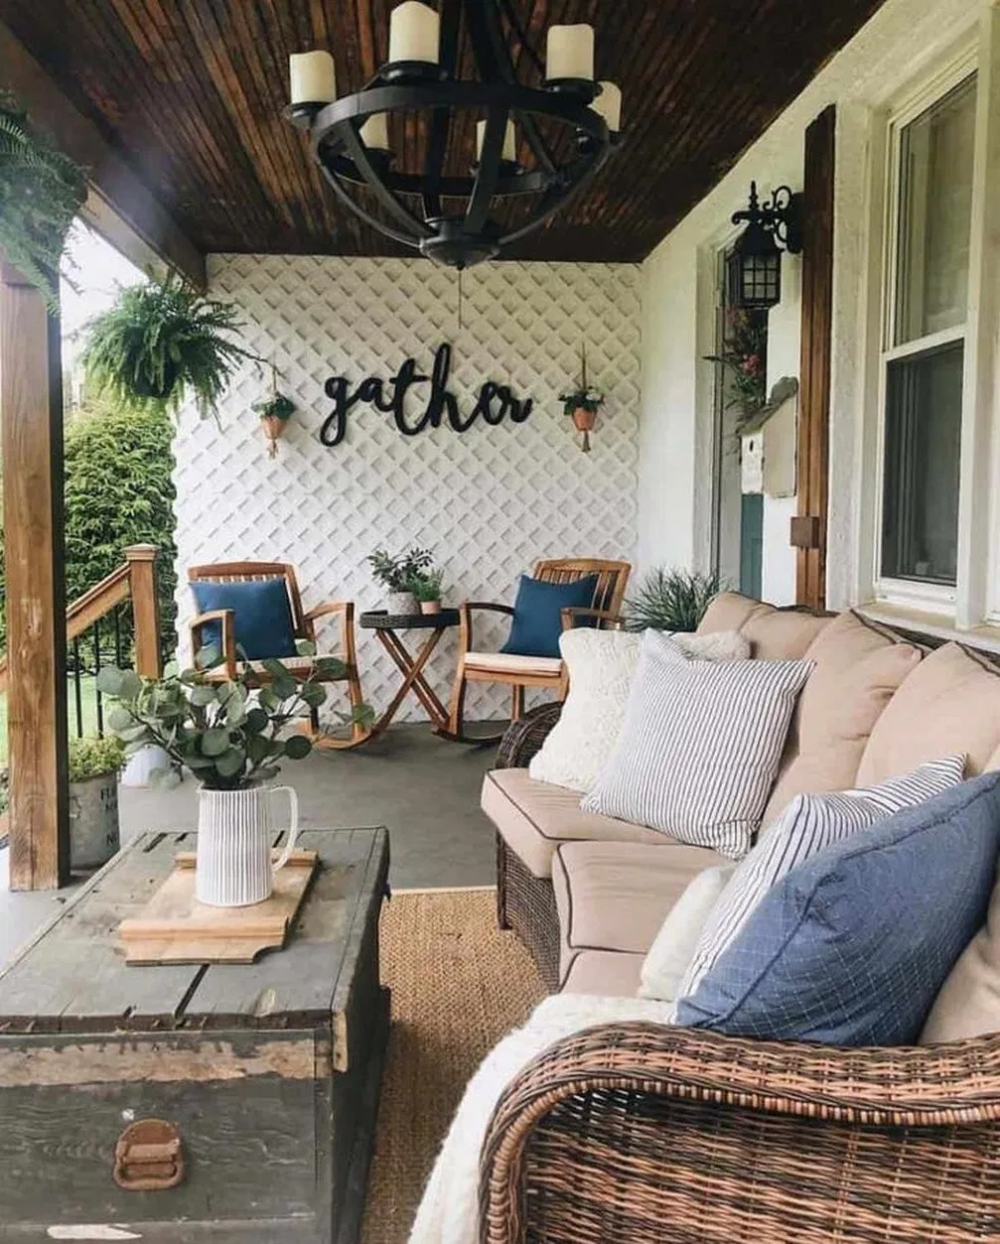 17 gorgeous and inviting farmhouse style porch decorating ideas 8 #farmhouse #farmhouseideas #farmhousedecor » helpwritingessays.net #rusticporchideas